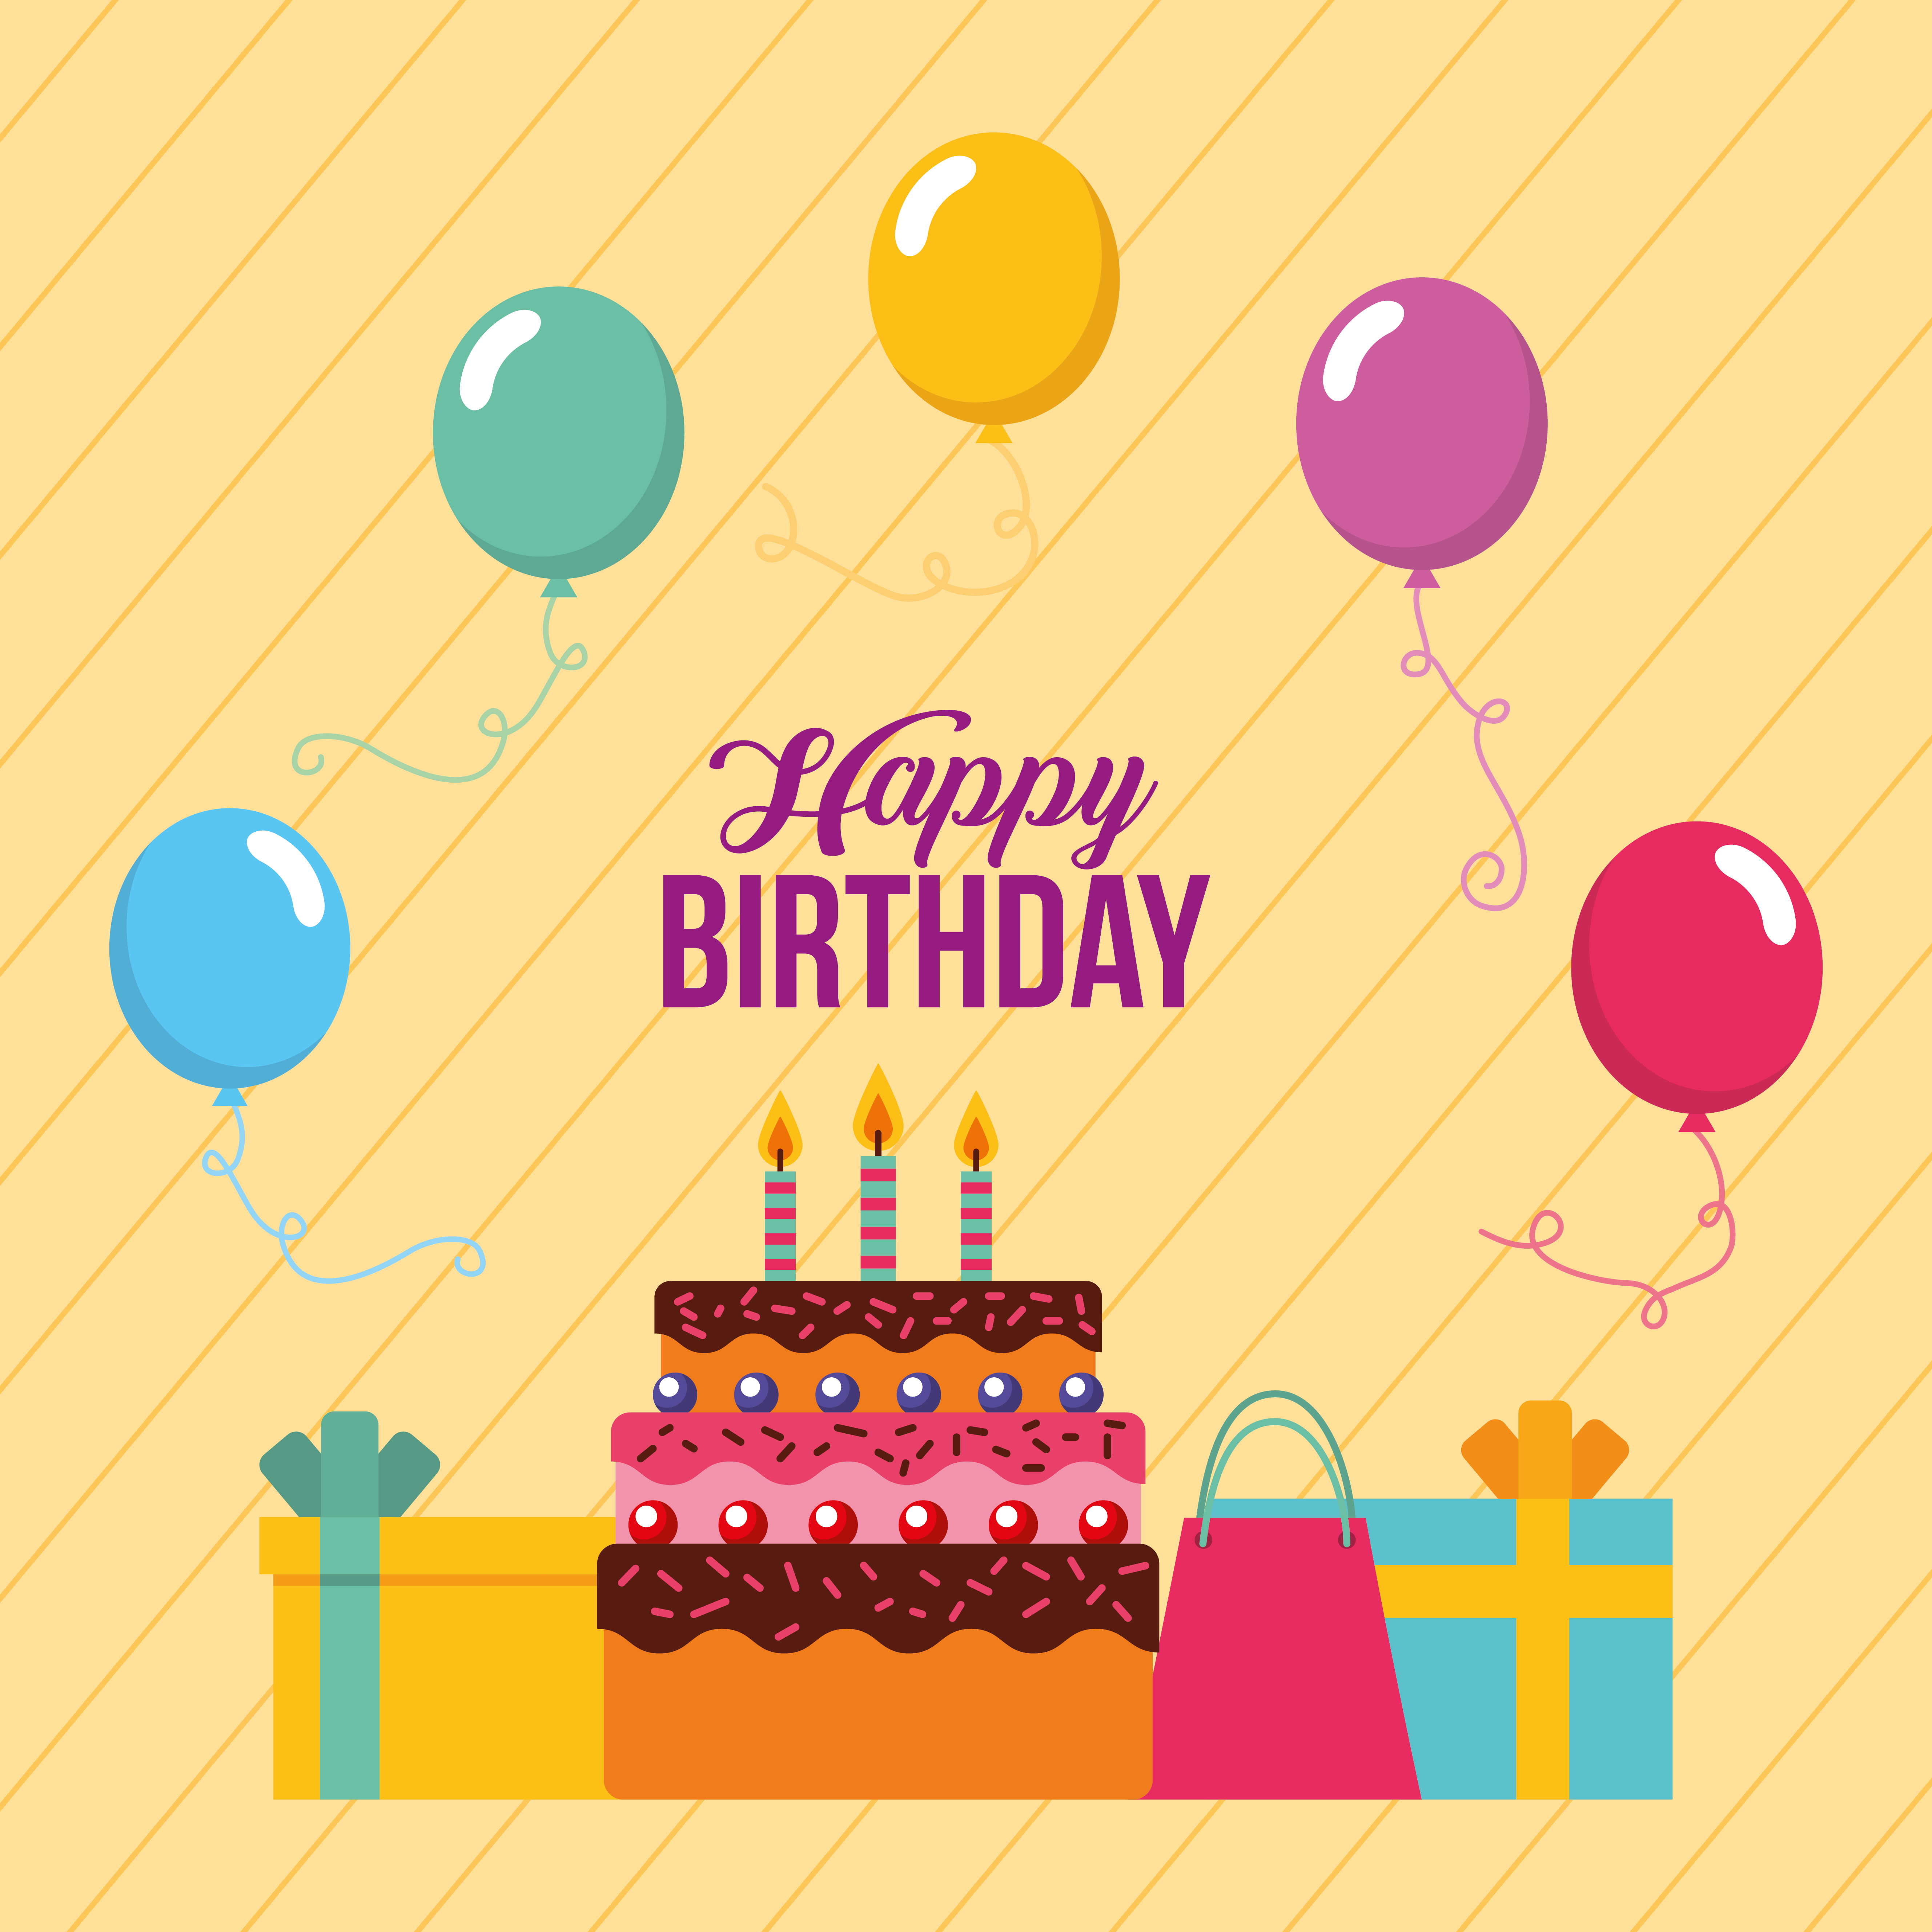 Outstanding Happy Birthday Card With Cake Presents And Balloons Download Funny Birthday Cards Online Sheoxdamsfinfo